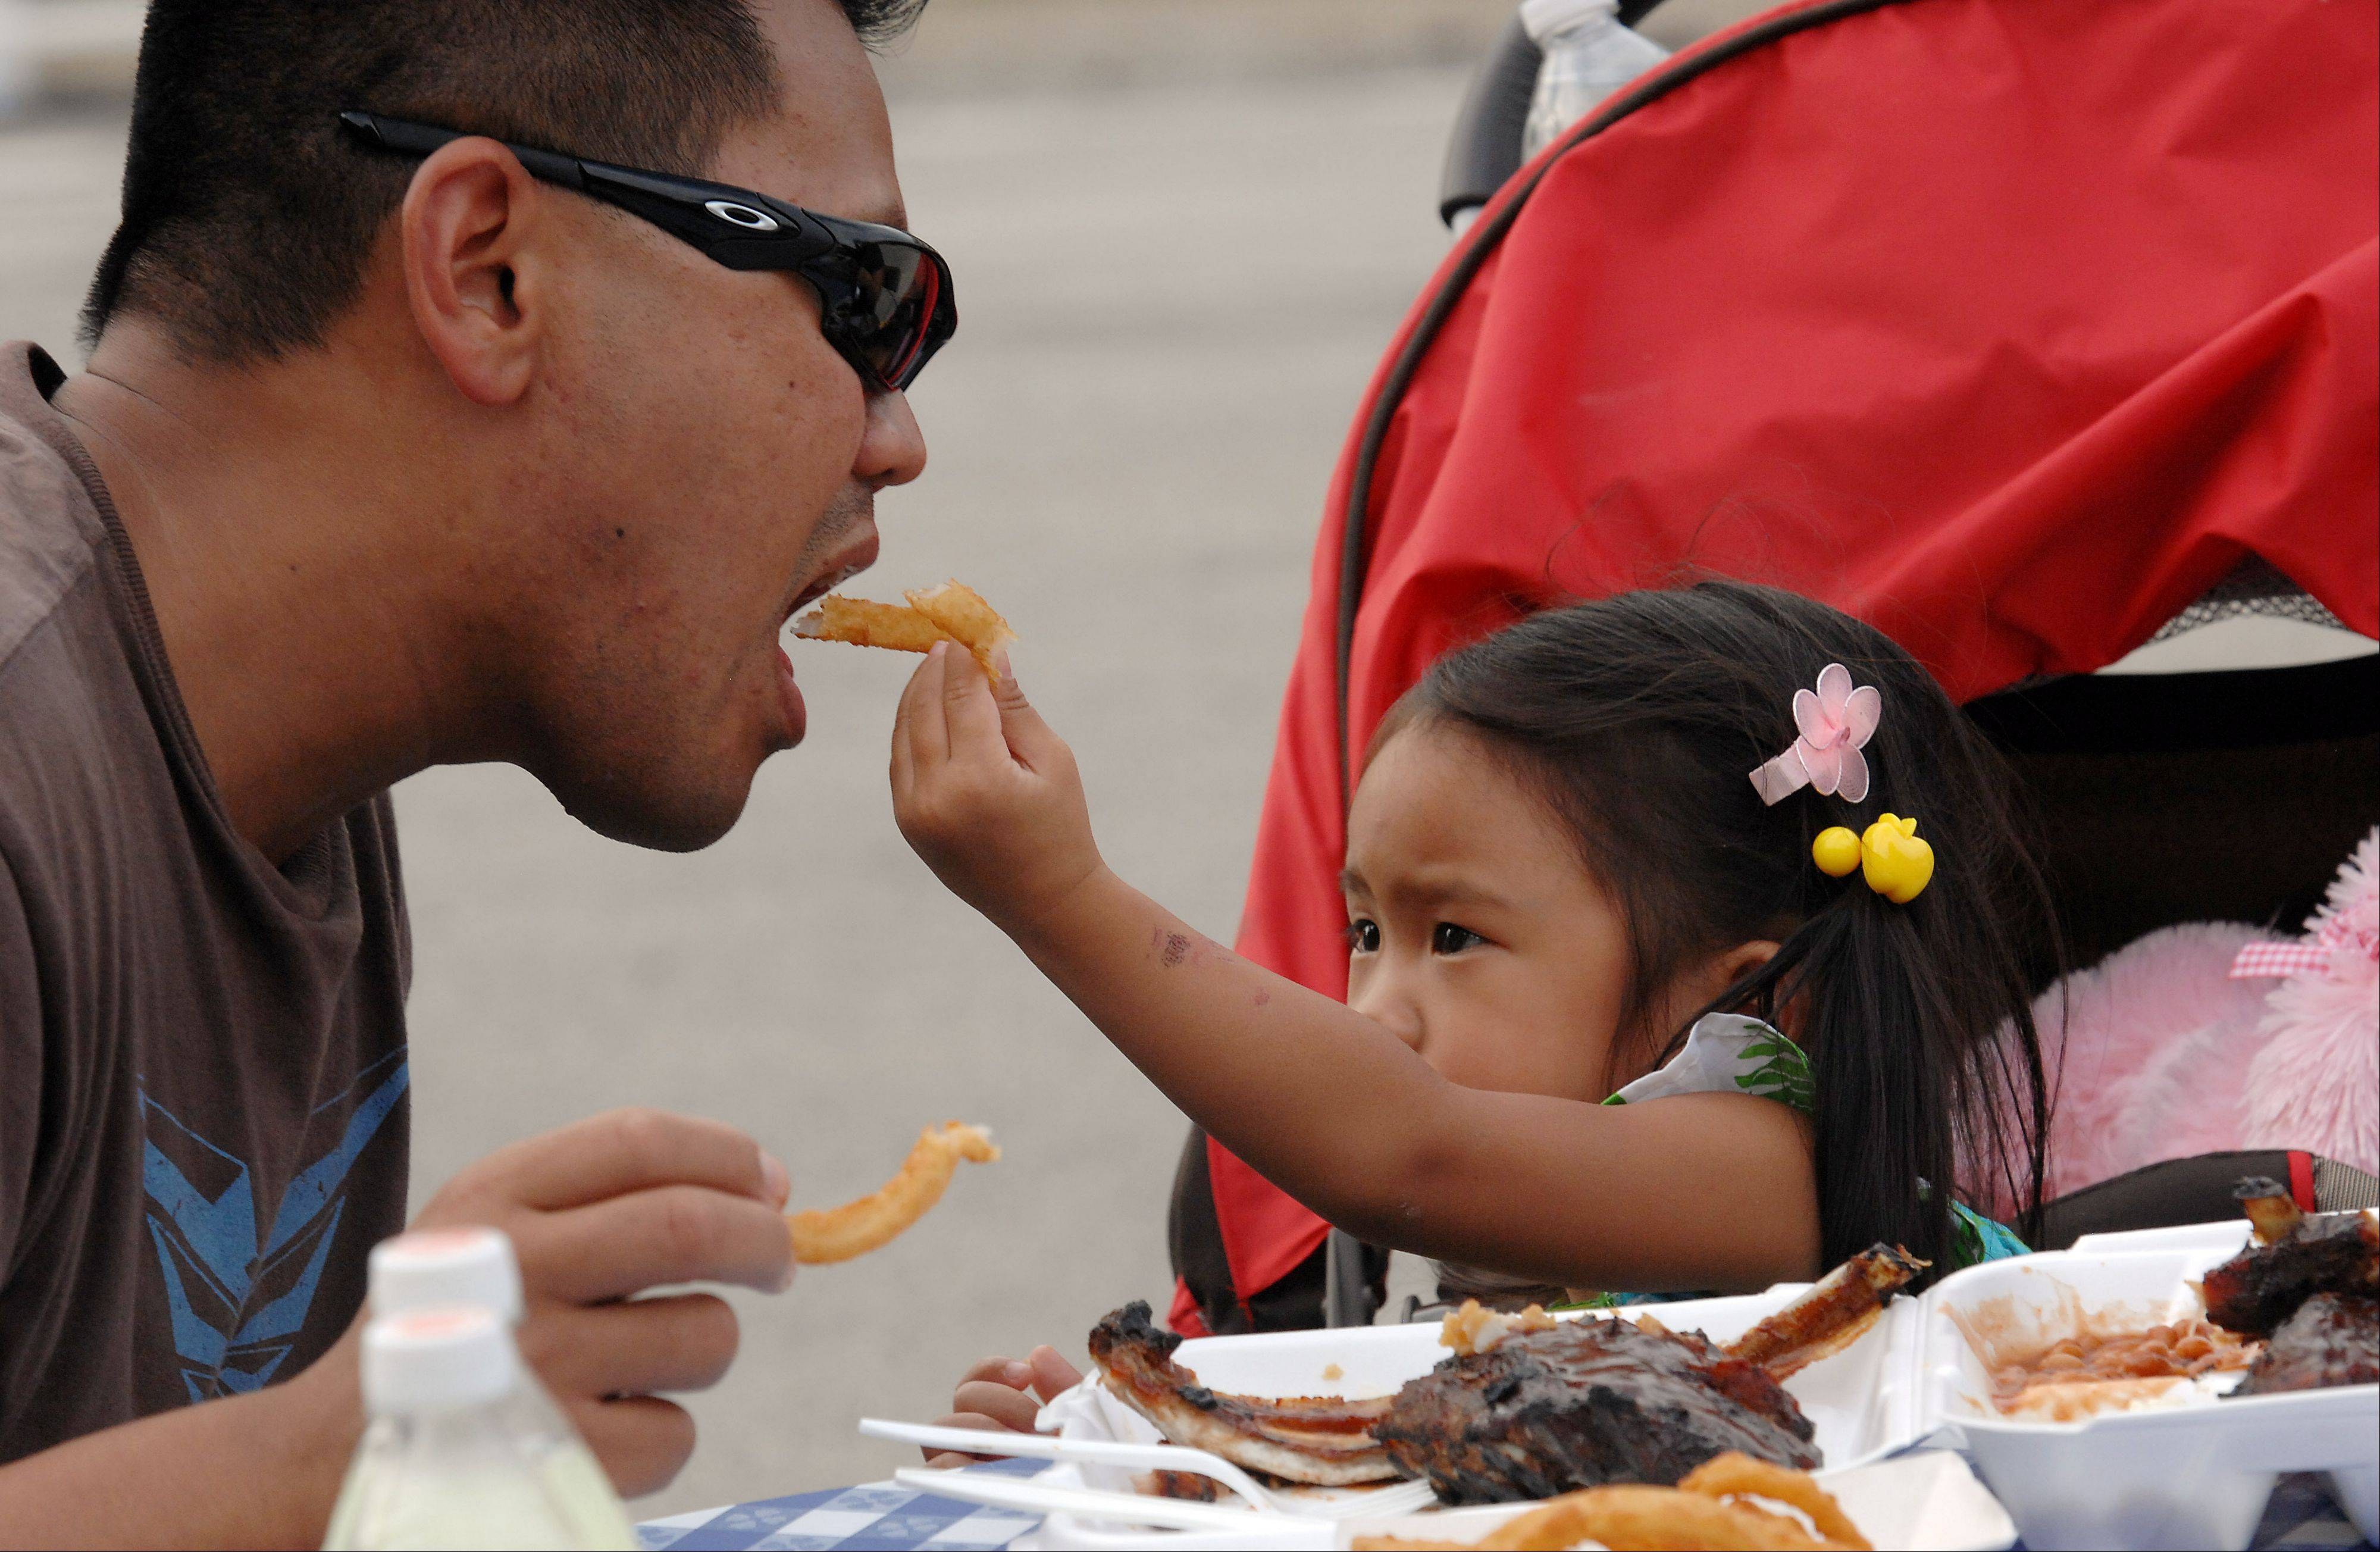 Sharing is caring- Jasmine Lucero, 2, of South Elgin gives her onion ring but none of her ribs to her dad, Joel, at the Palatine Streetfest on Friday.